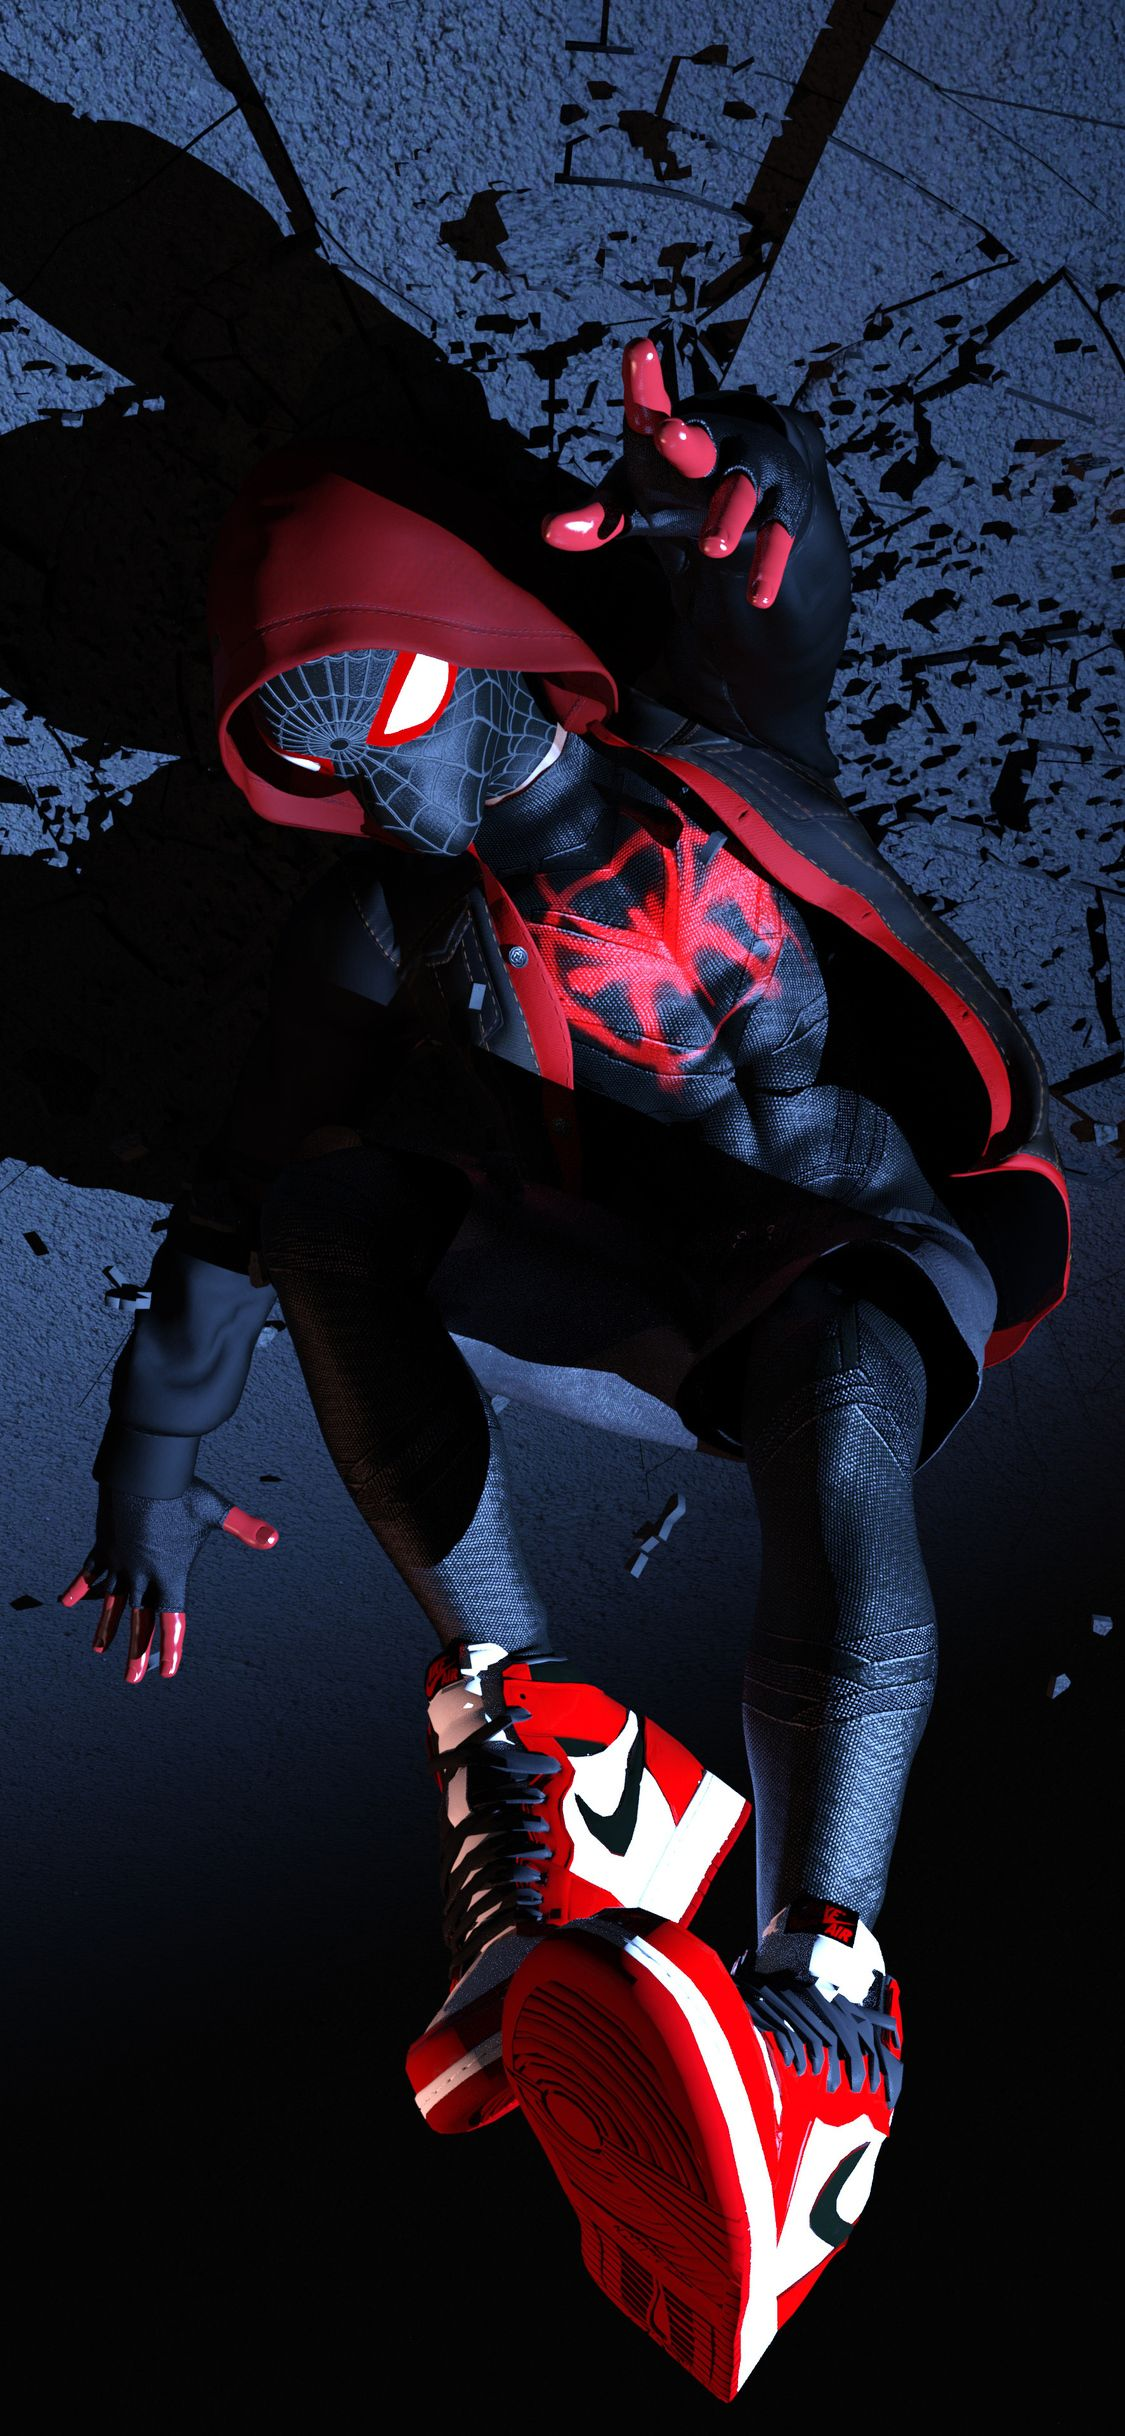 1125x2436 Spiderman Miles Morales 4k Iphone Xs Iphone 10 Iphone X